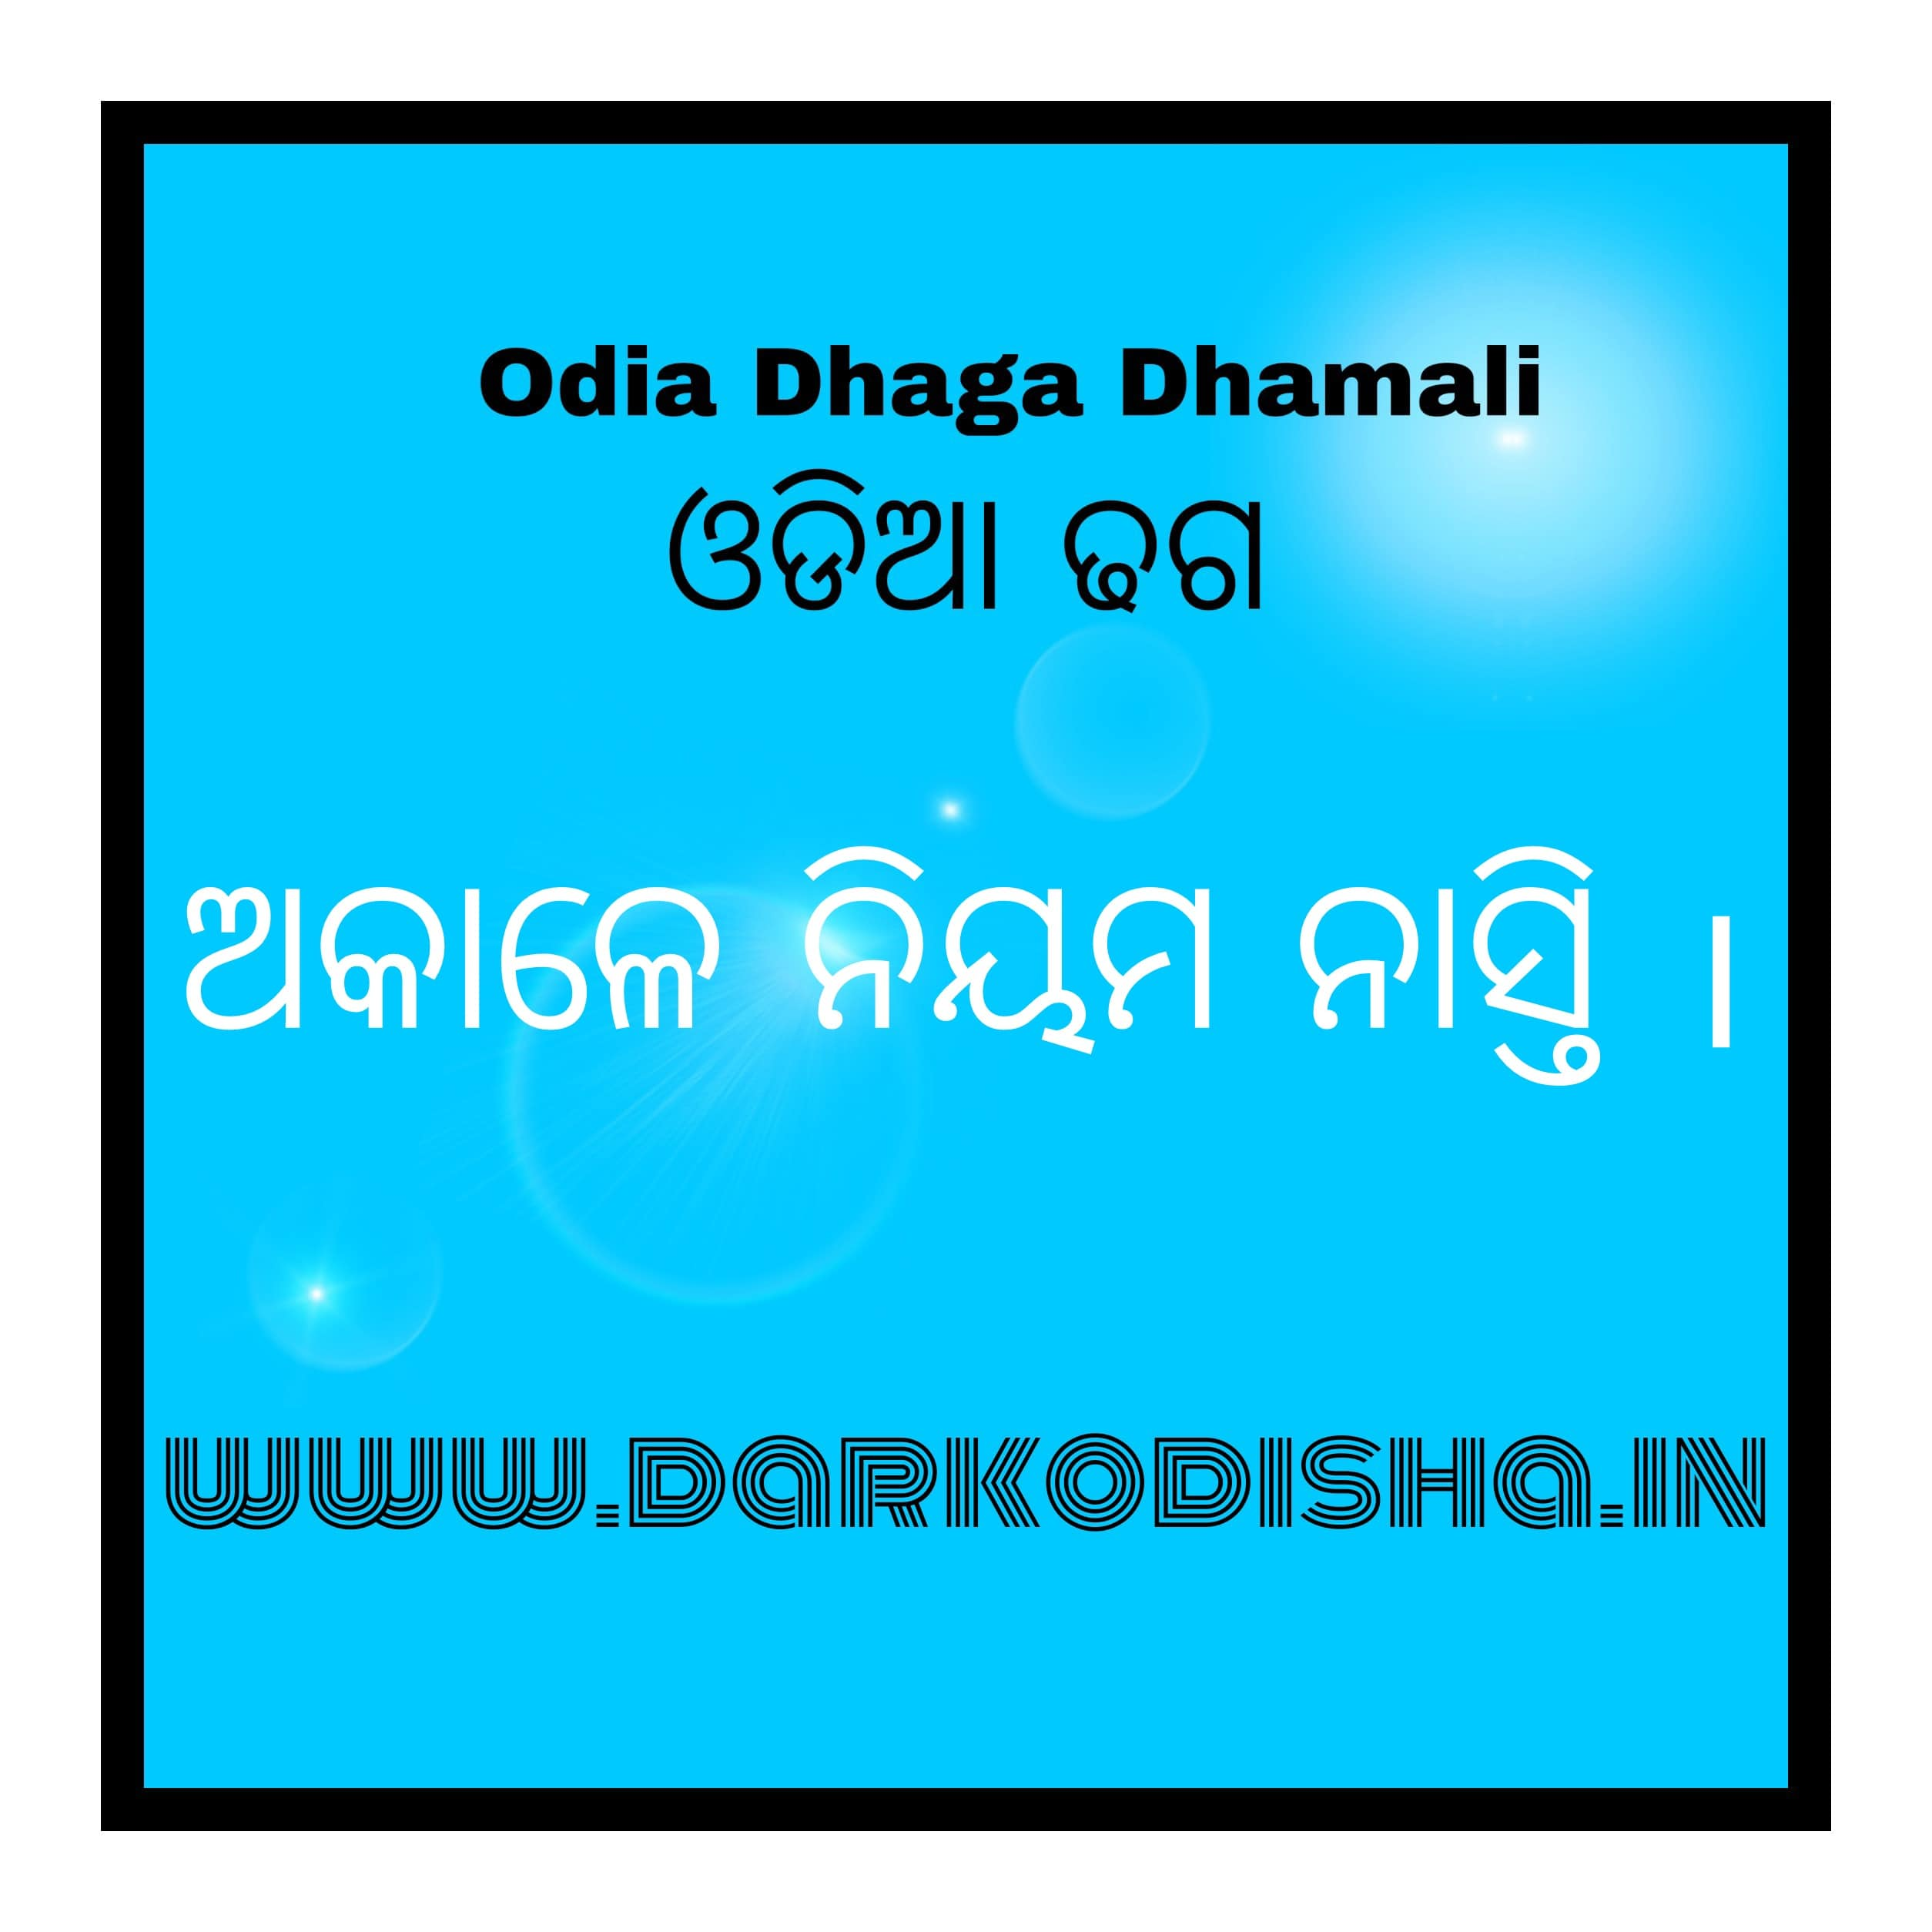 akale niyama nasti odia dhaga dhamali question answer pdf